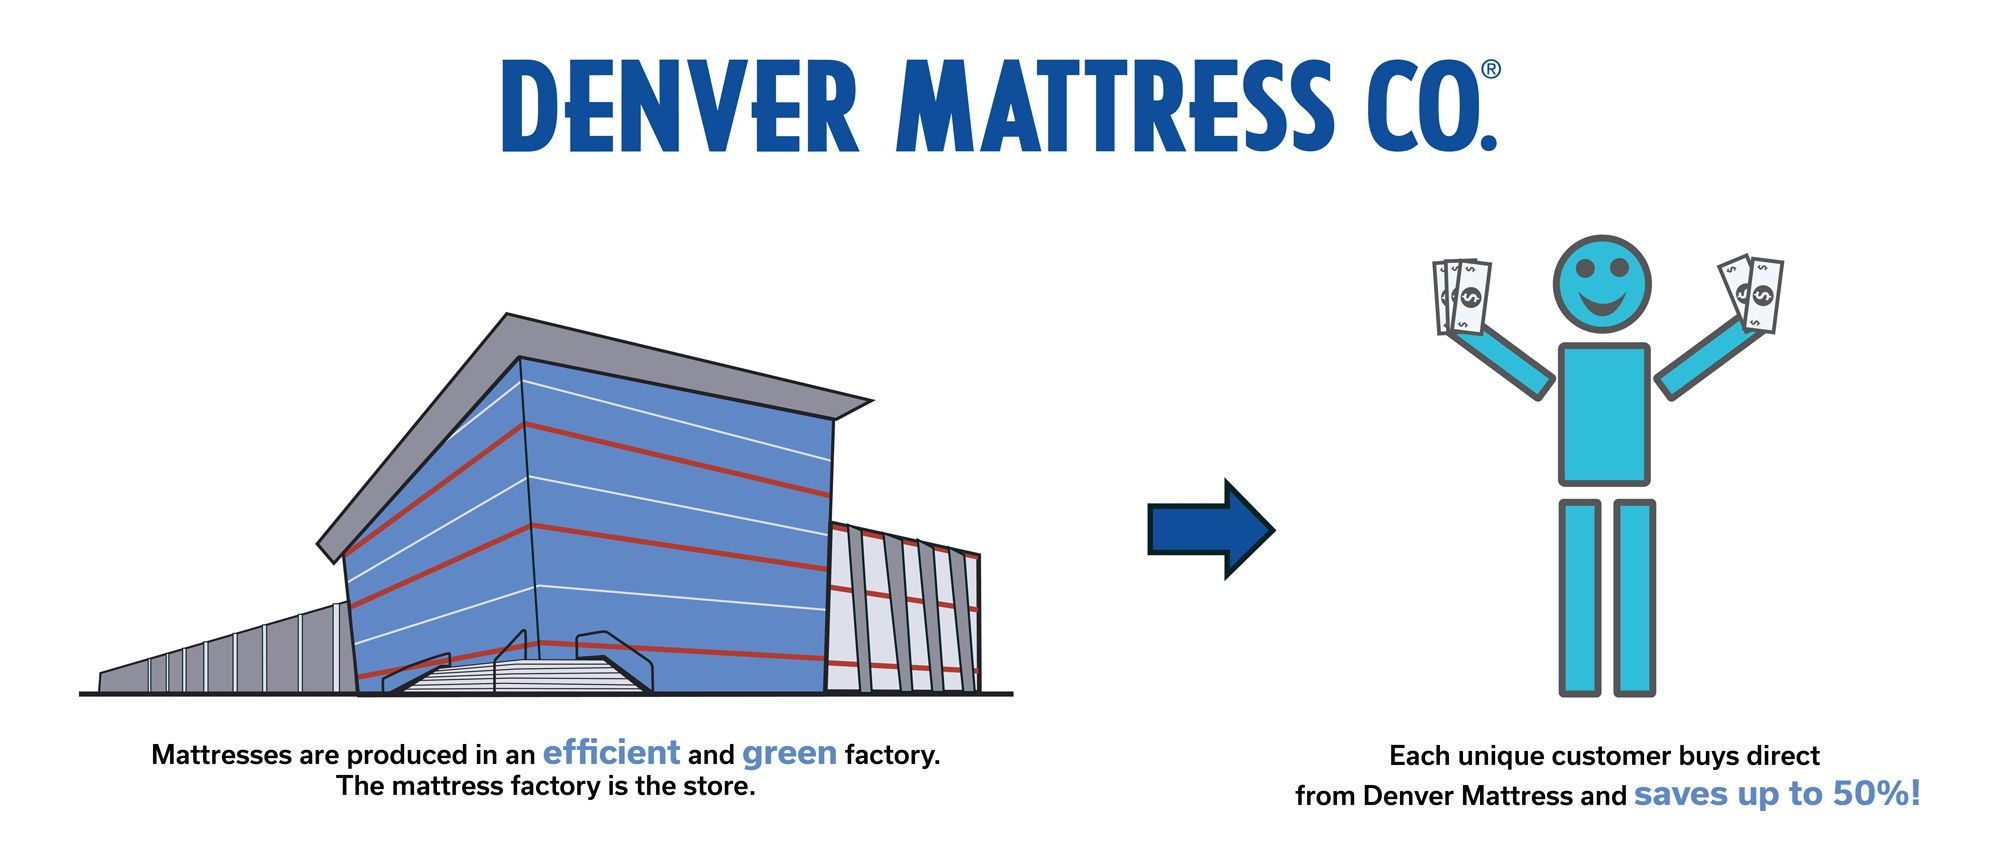 Denver Mattress Process: Step 1 Mattress Produced at an efficient and green factory and shipped directly to store , Step 2 Each Customer buys direct from Denver Mattress and saves up to 50%